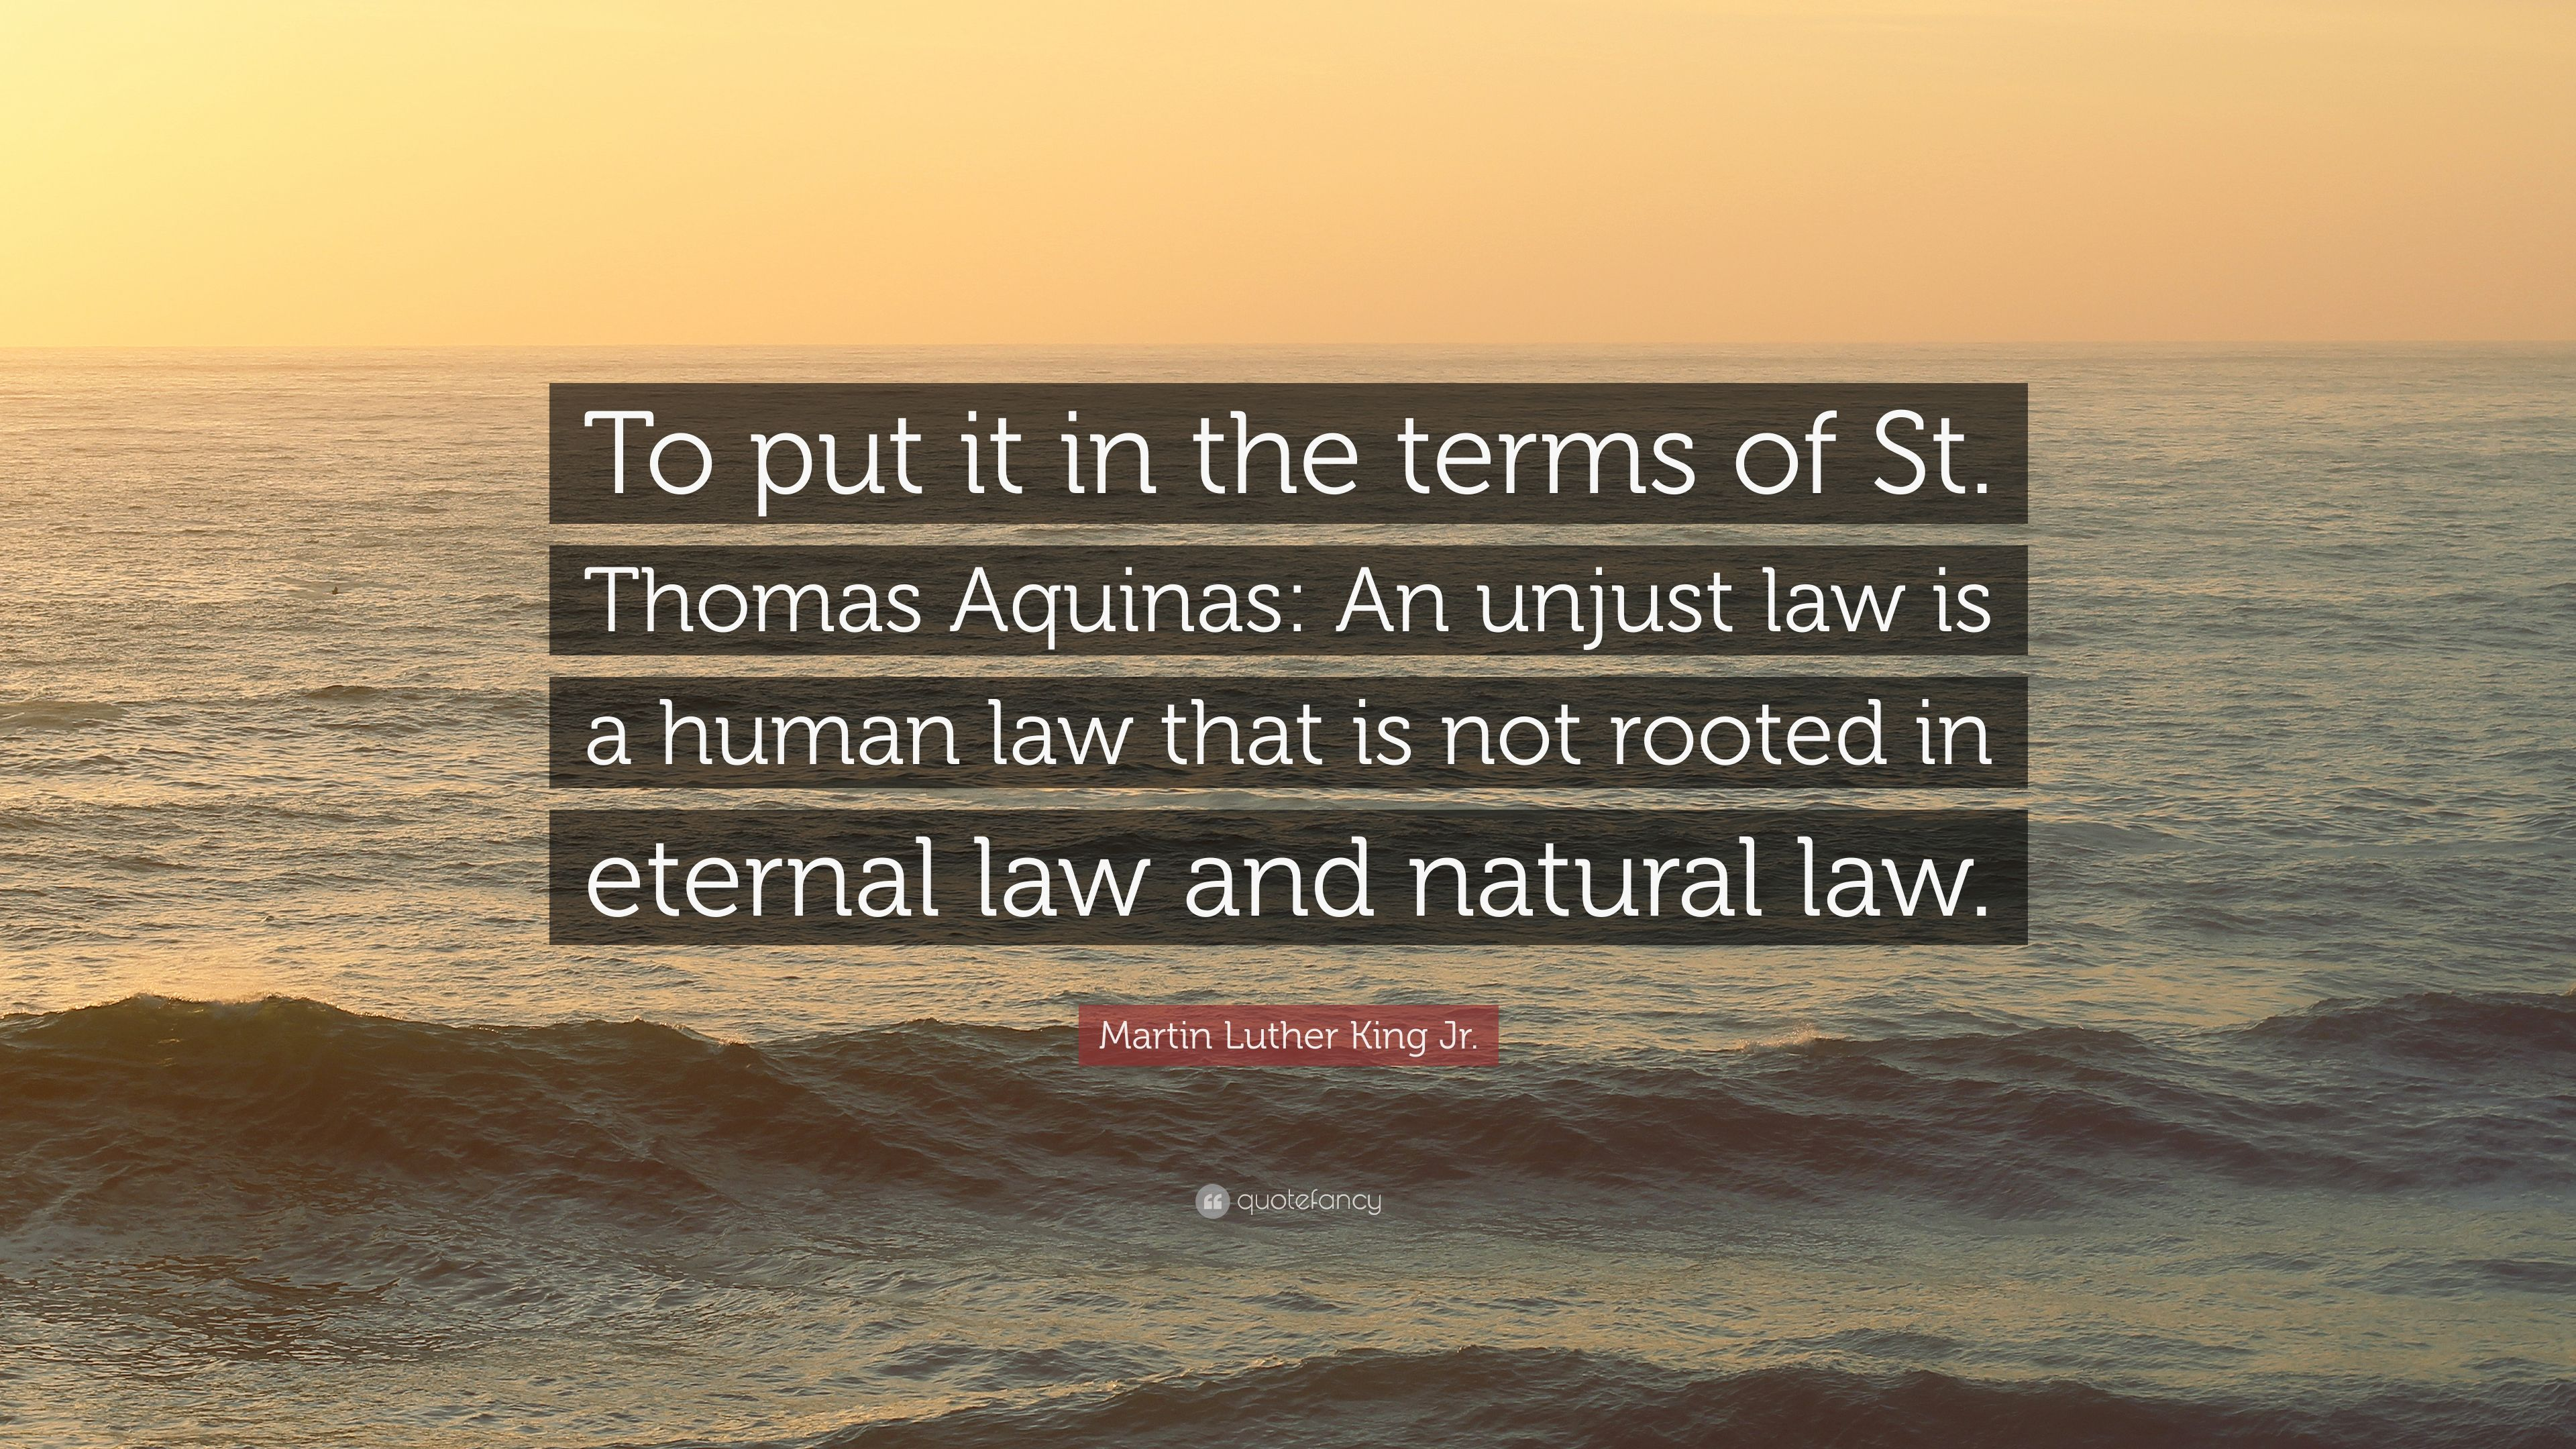 st thomas aquinas the human law St thomas aquinas, literally translated by fathers of' the english dominican province, burns, oates, and washbourne, ltd, london, 1938, 3rd edition, i, q 2, art 1 ad 1: to know that god exists in a general and contused way is implanted in us by nature, inasmuch as god is man's beatitude.